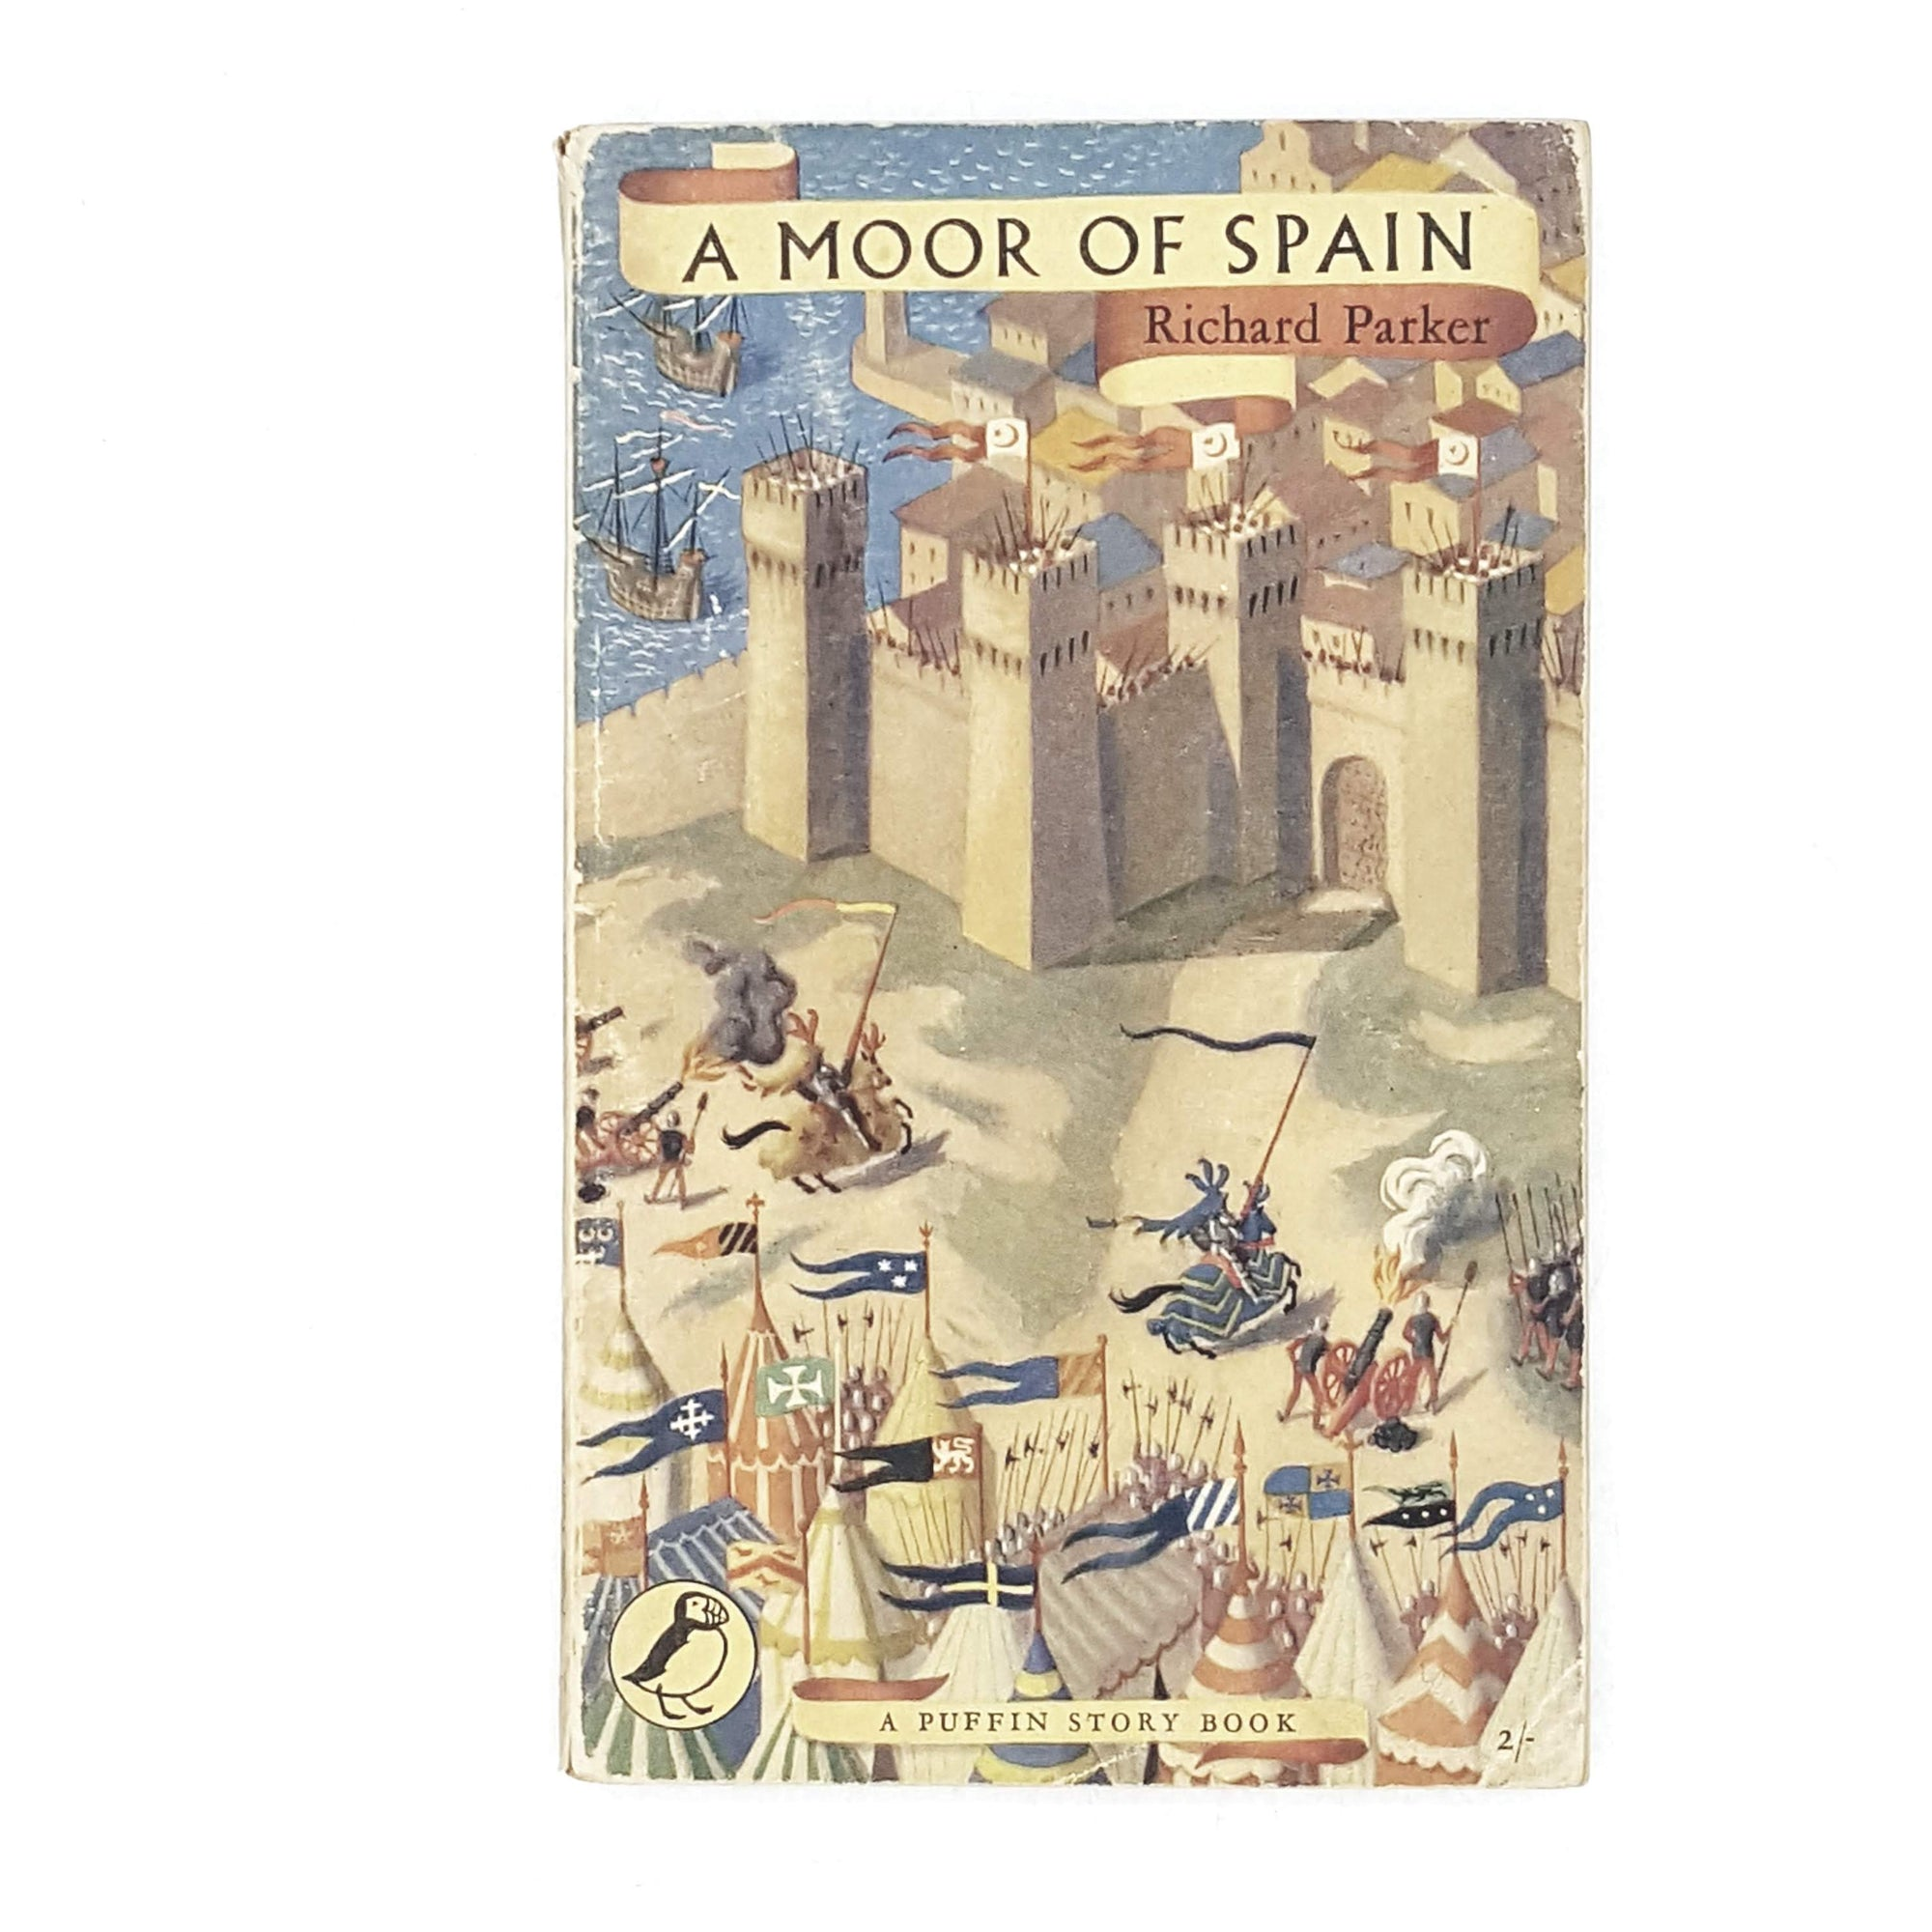 A Moor of Spain by Richard Parker 1953